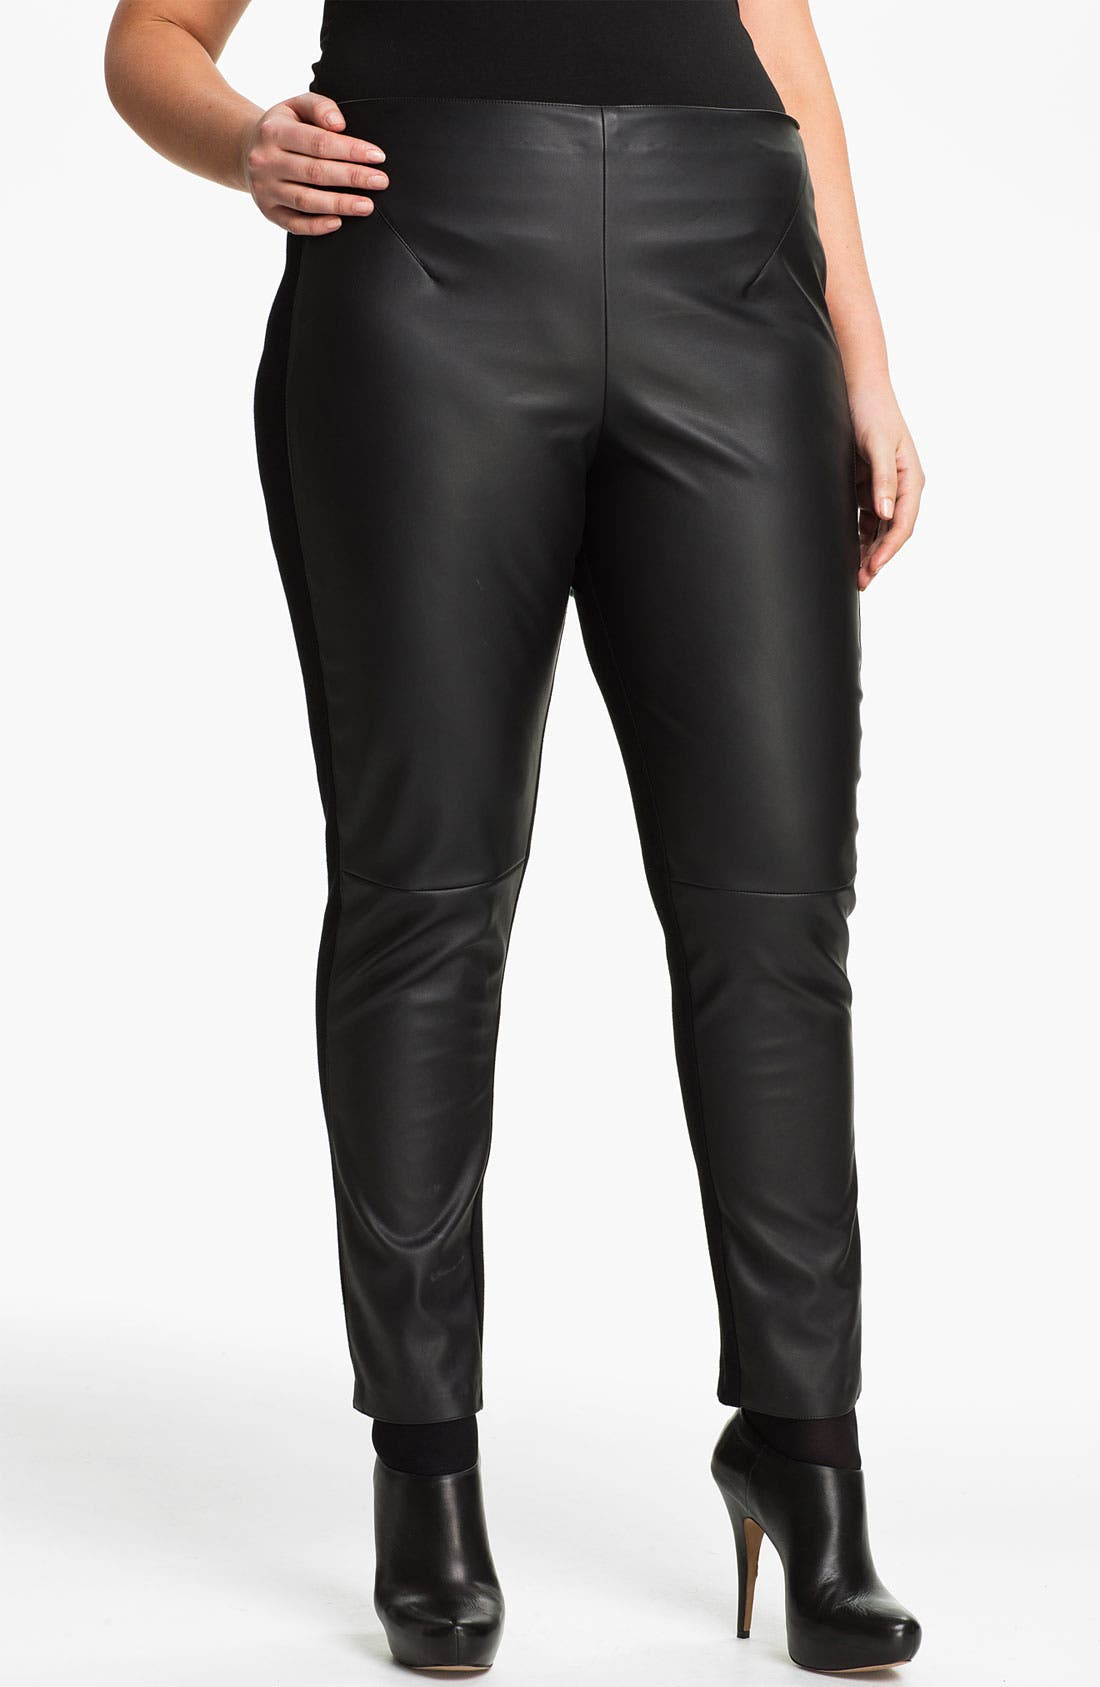 Alternate Image 1 Selected - Two by Vince Camuto Faux Leather & Knit Leggings (Plus)